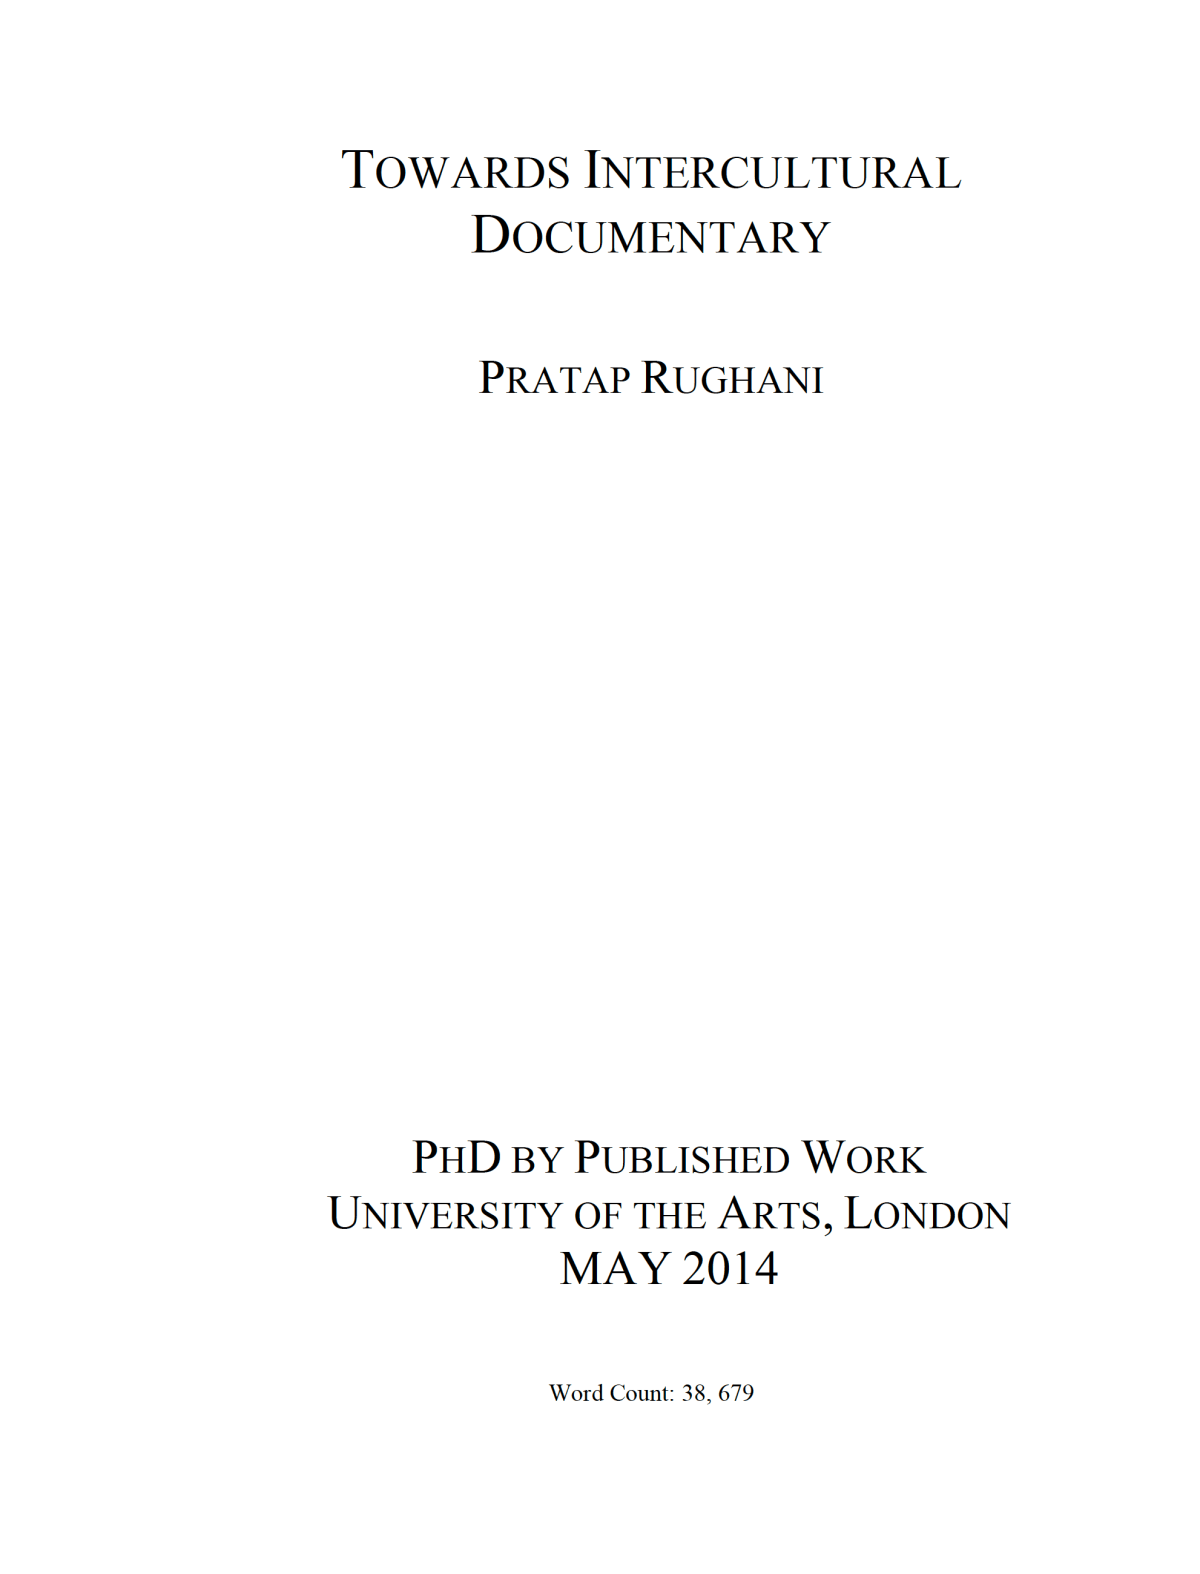 """Towards Intercultural Documentary"" PhD by Pratap Rughani"